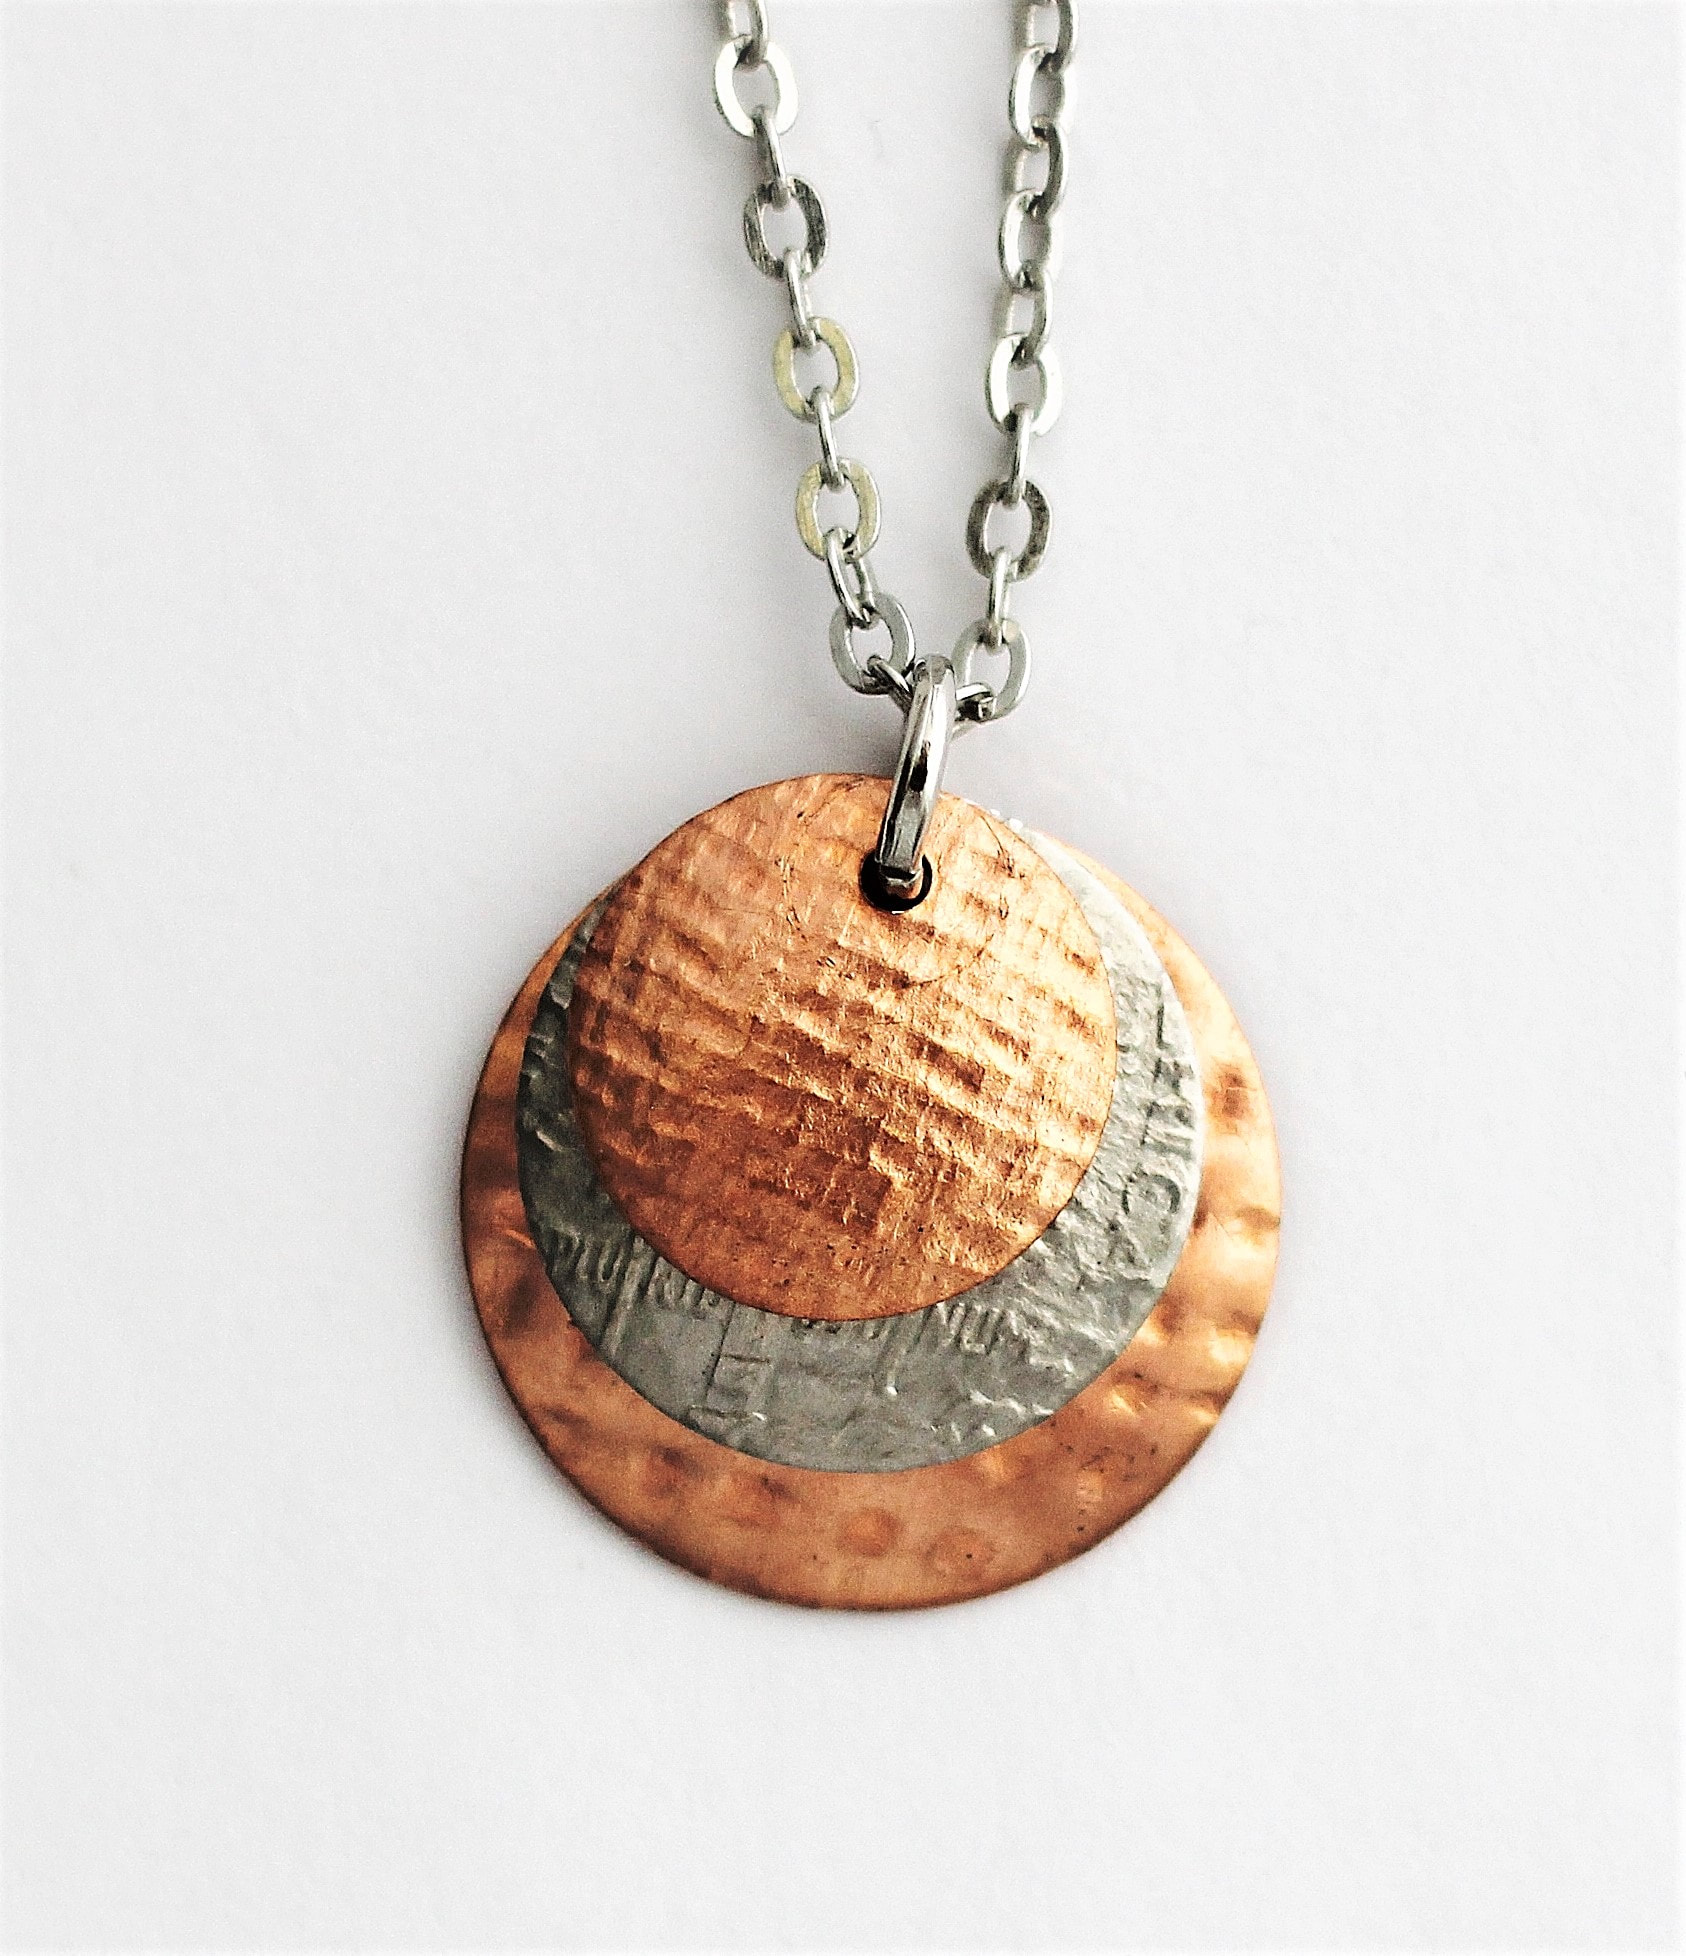 U S Dime Coin Necklace Layered Copper Pendant Handmade Mixed Metal Hendywood